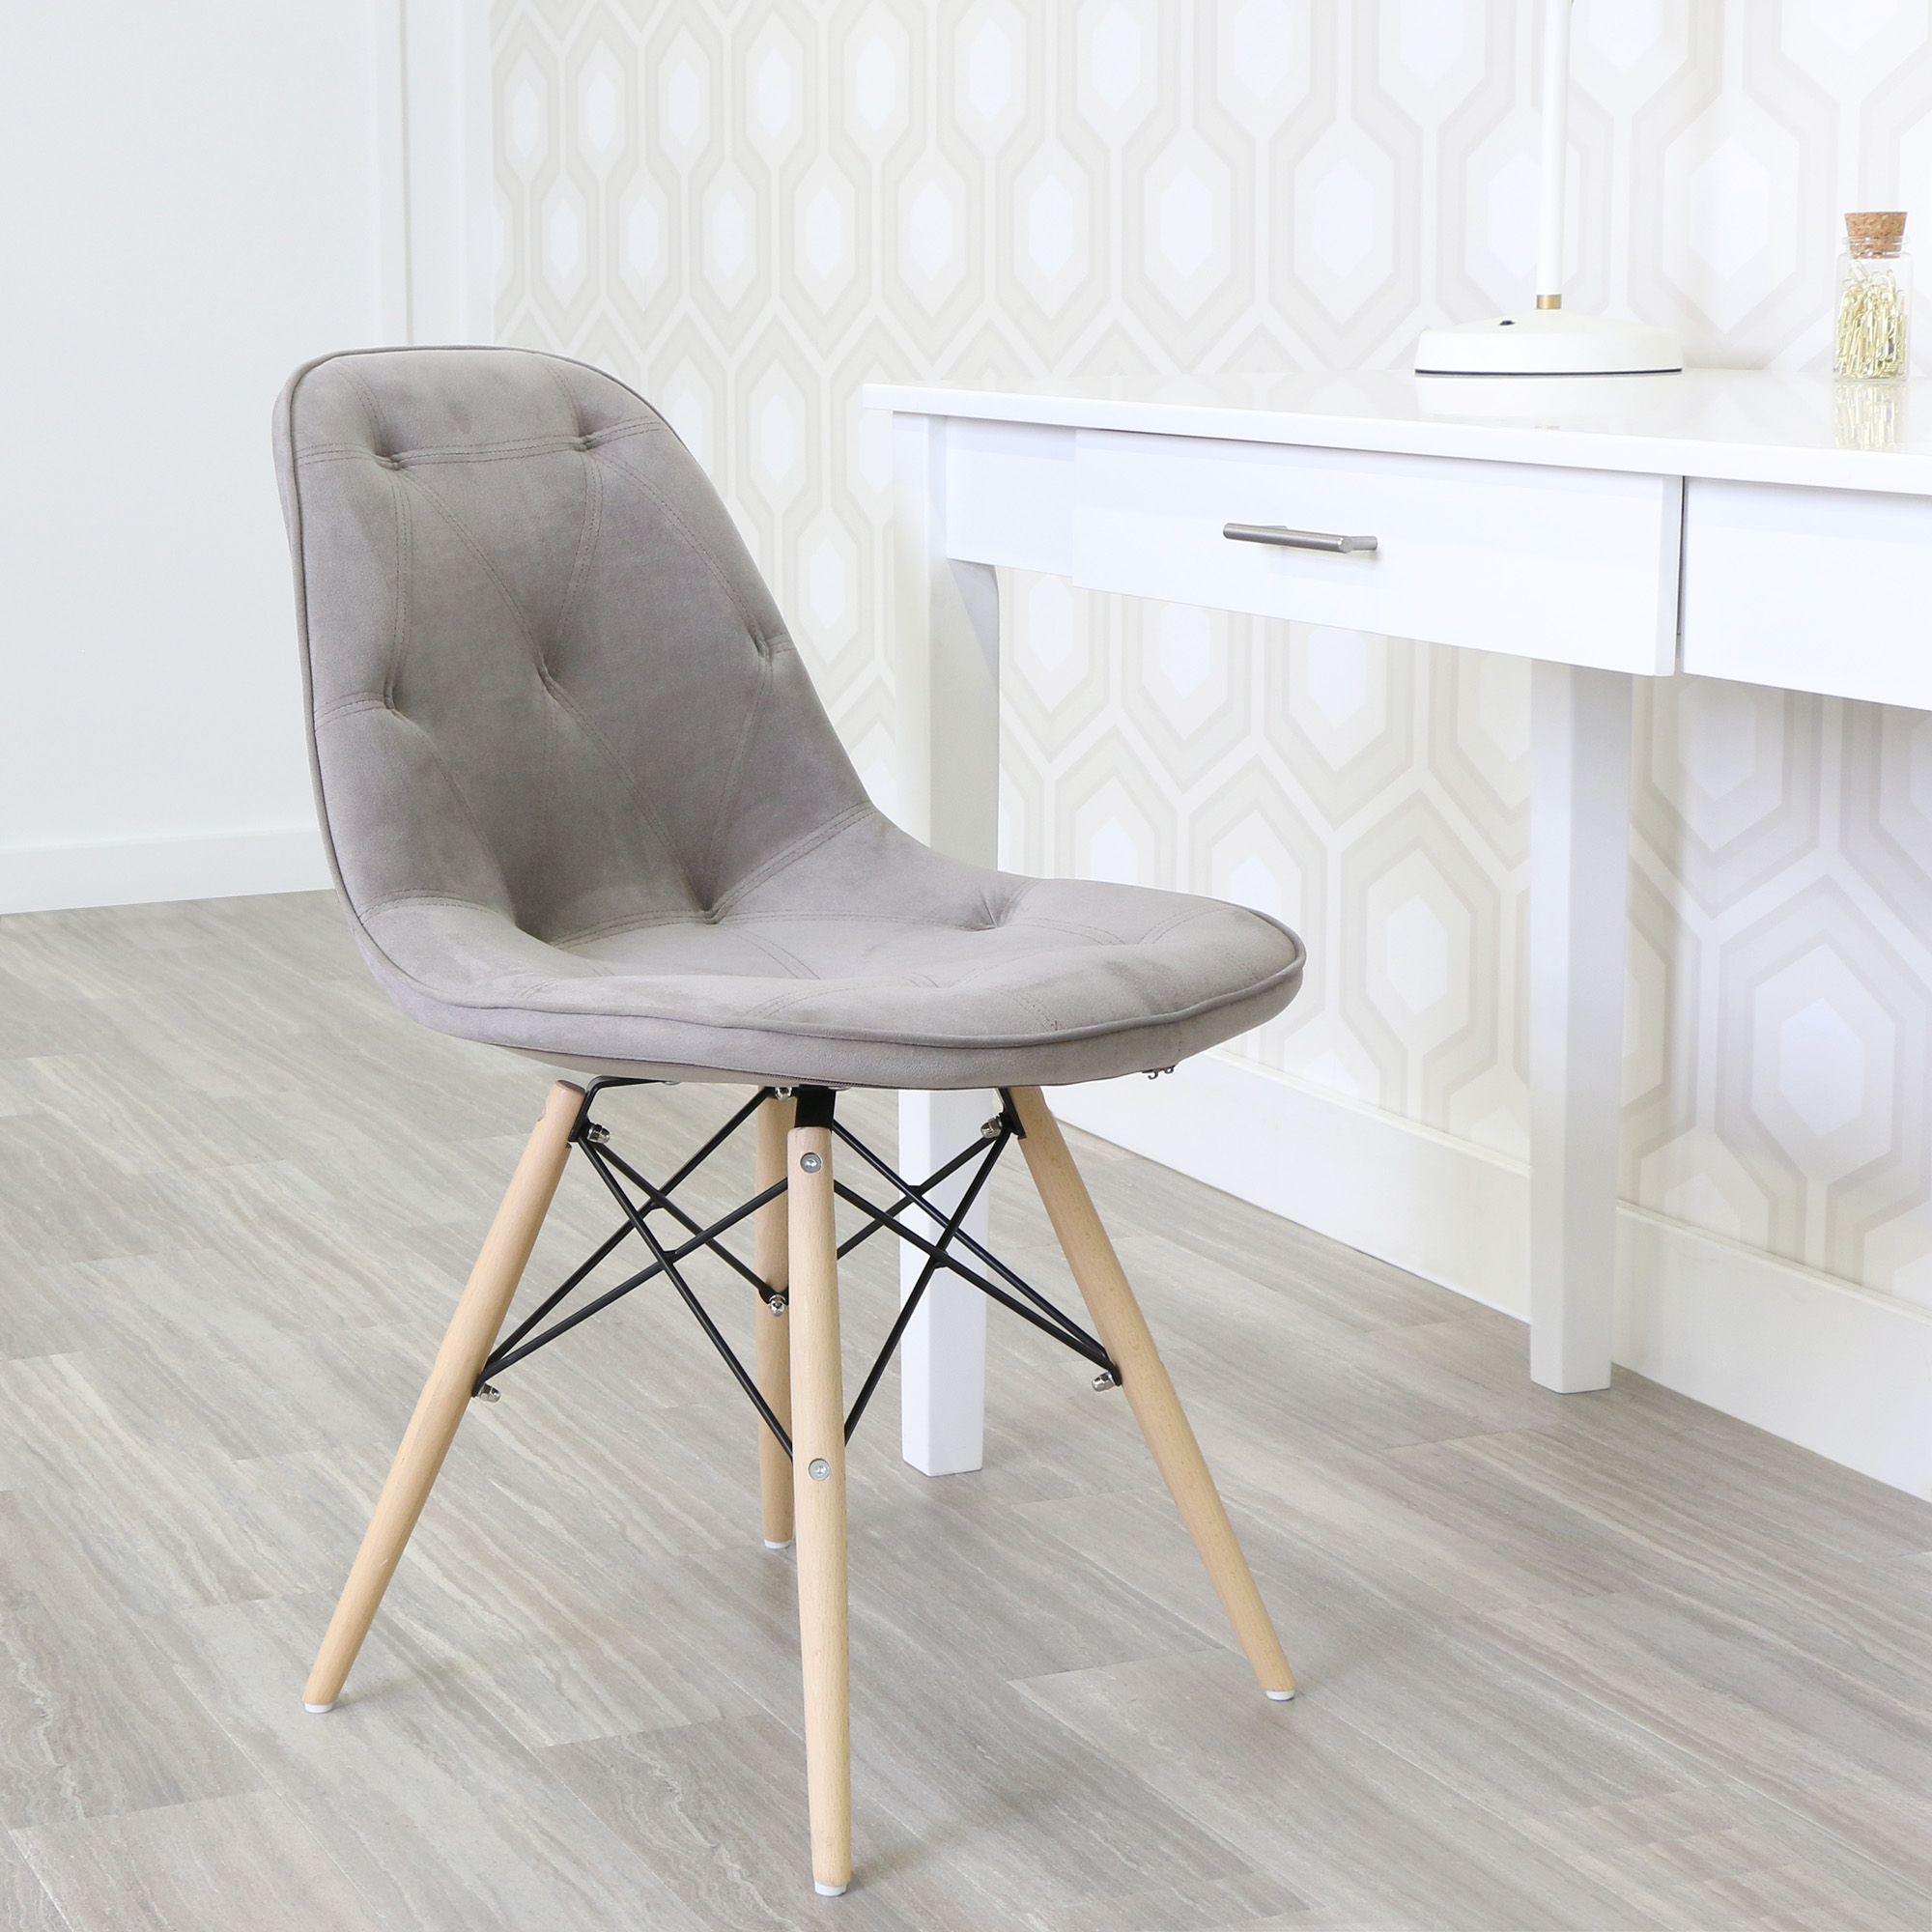 Walker Edison Upholstered Eames Chairs, Grey, Set of 2